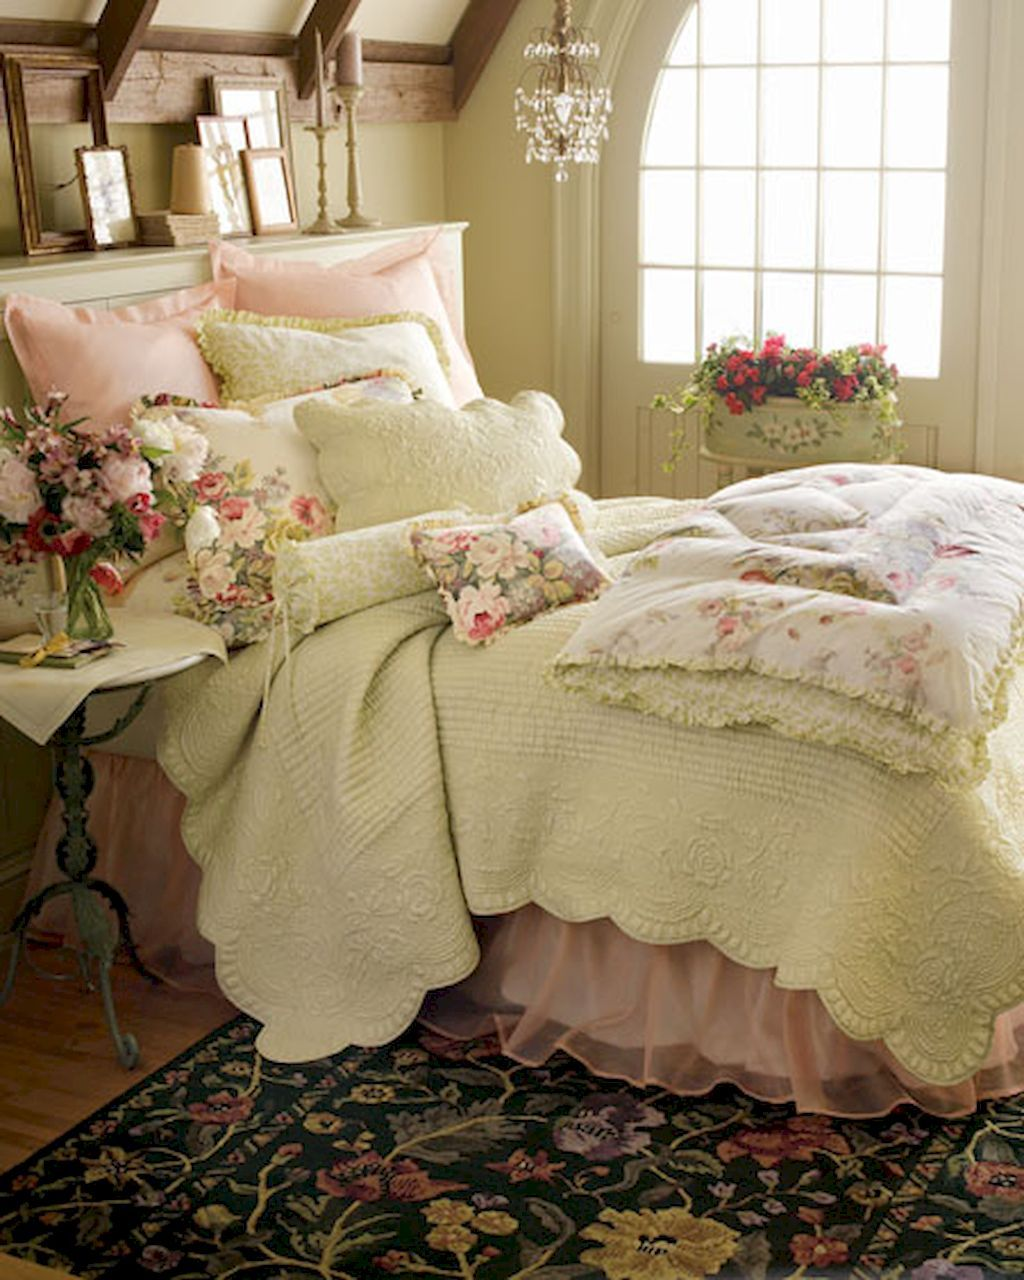 Shabby Chic Bedrooms 90 Romantic Shabby Chic Bedroom Decor And Furniture Inspirations